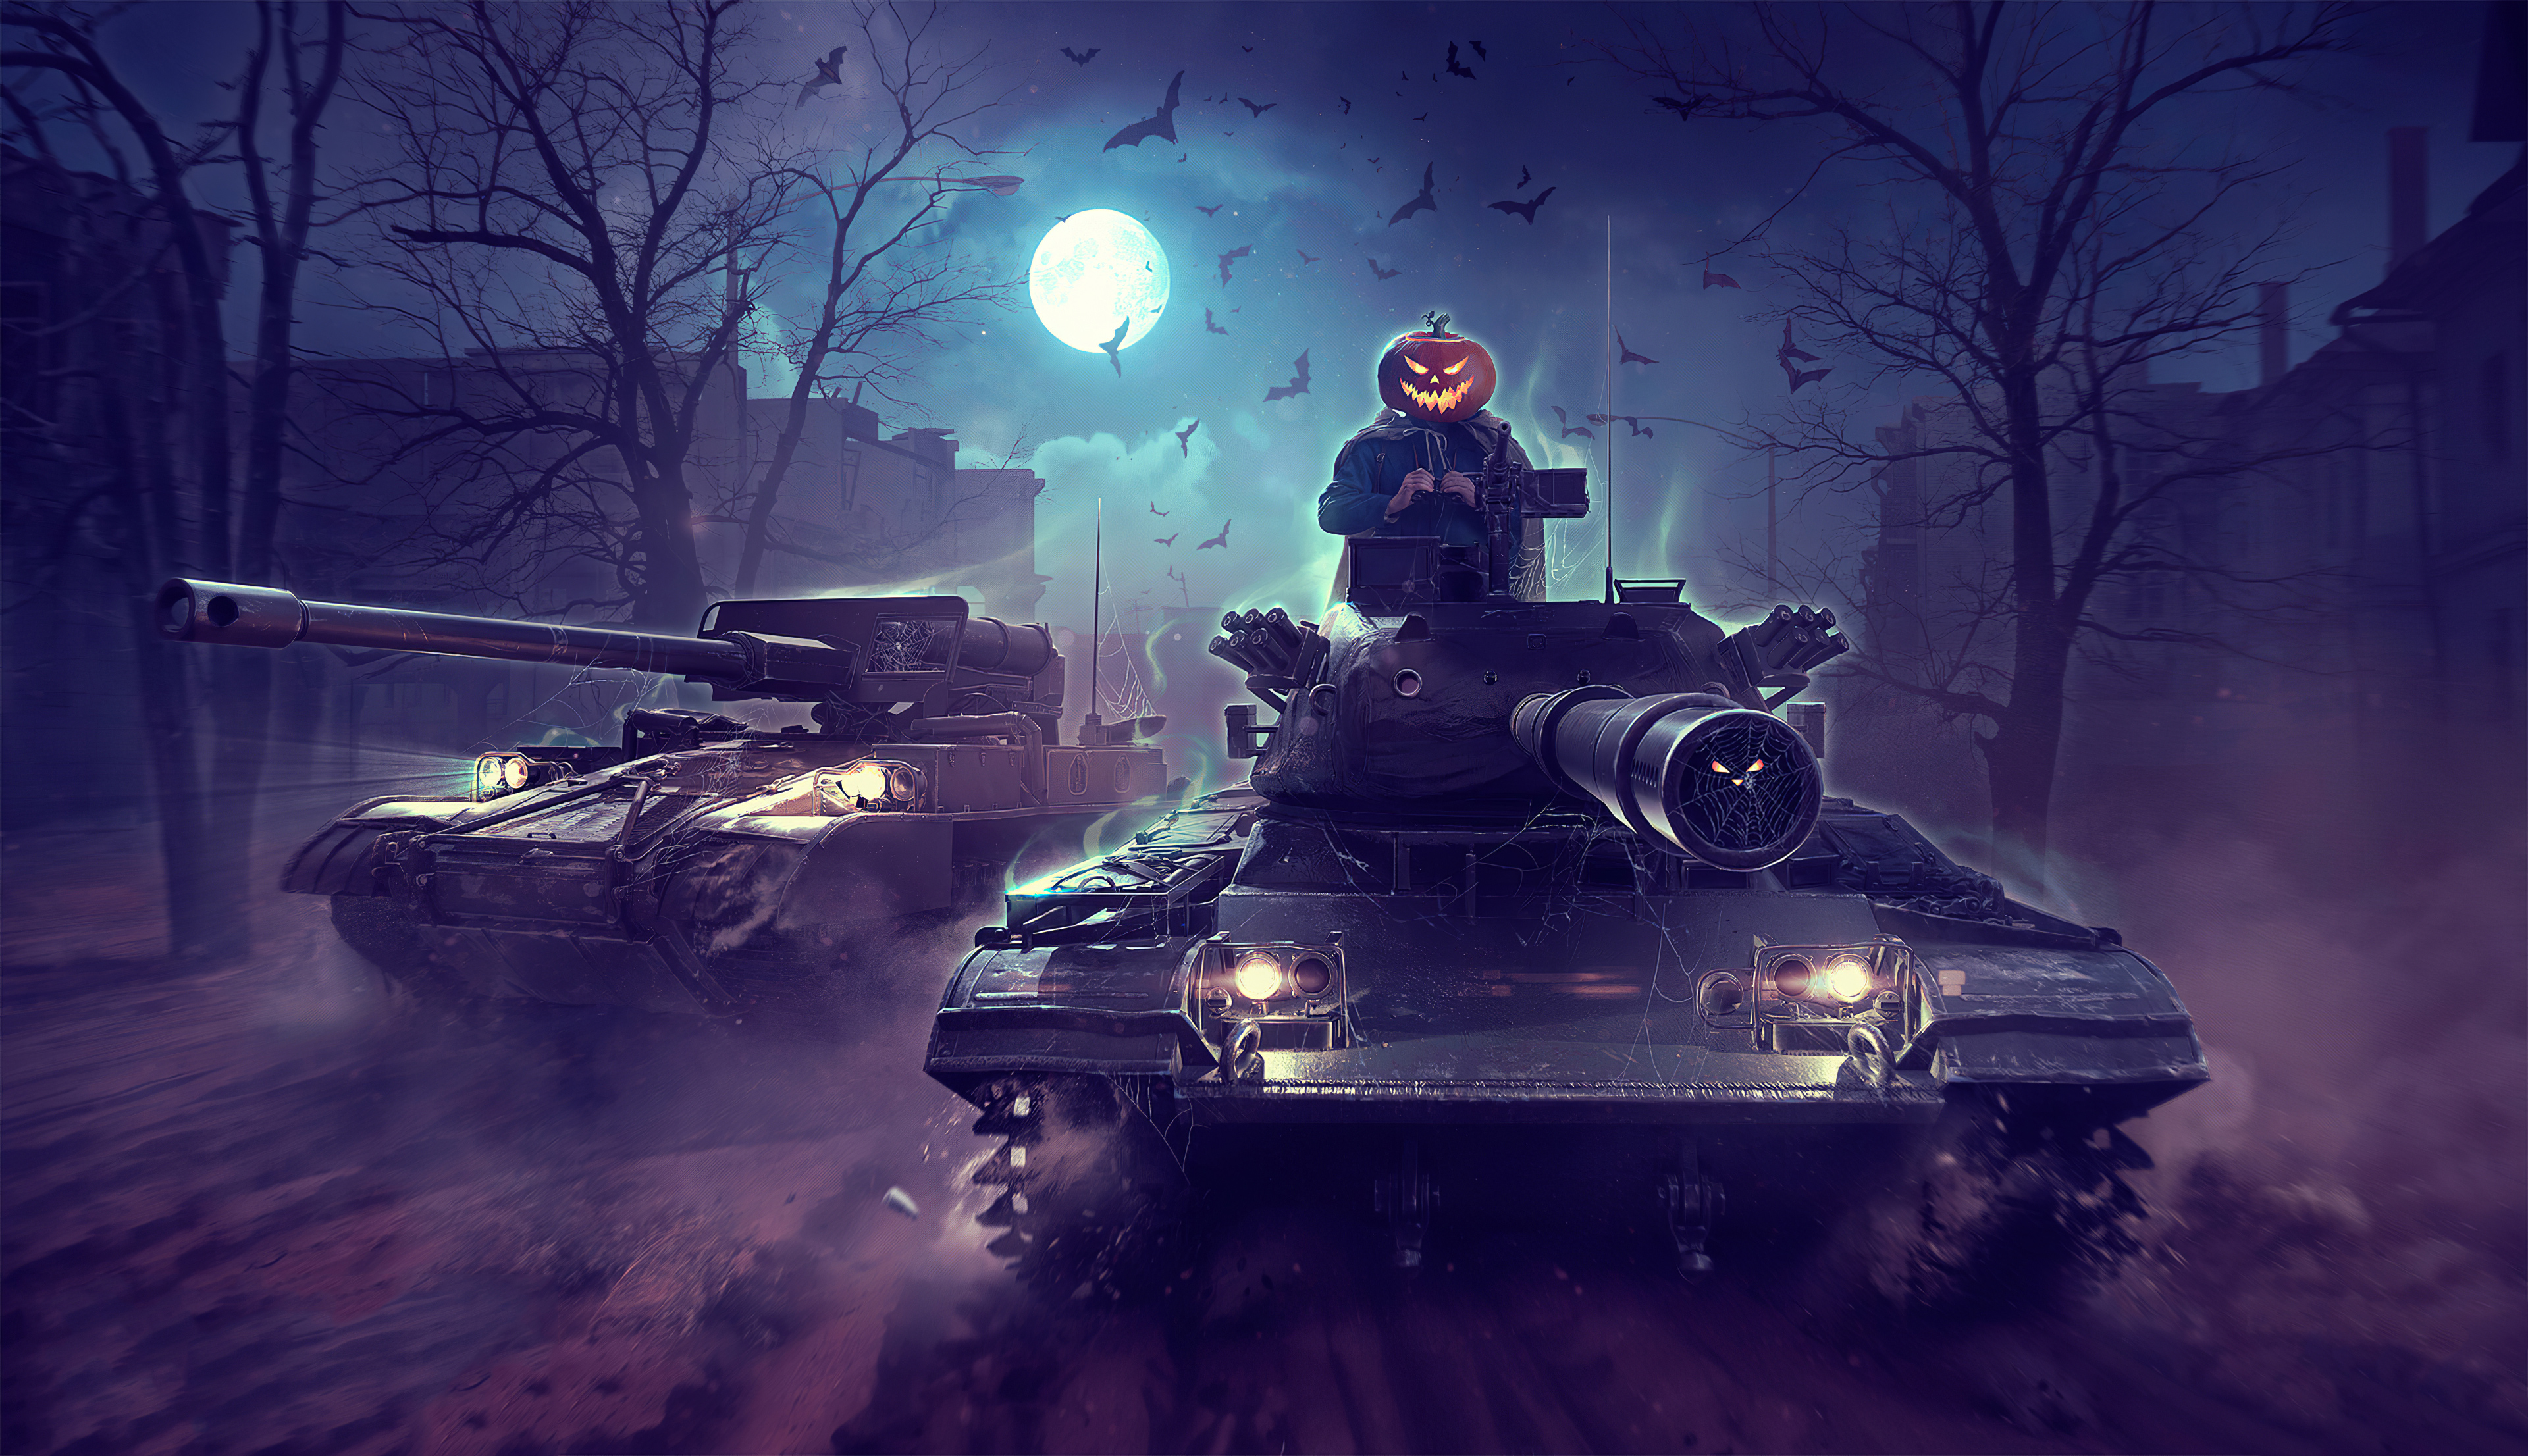 World Of Tanks 4k, HD Games, 4k Wallpapers, Images ...